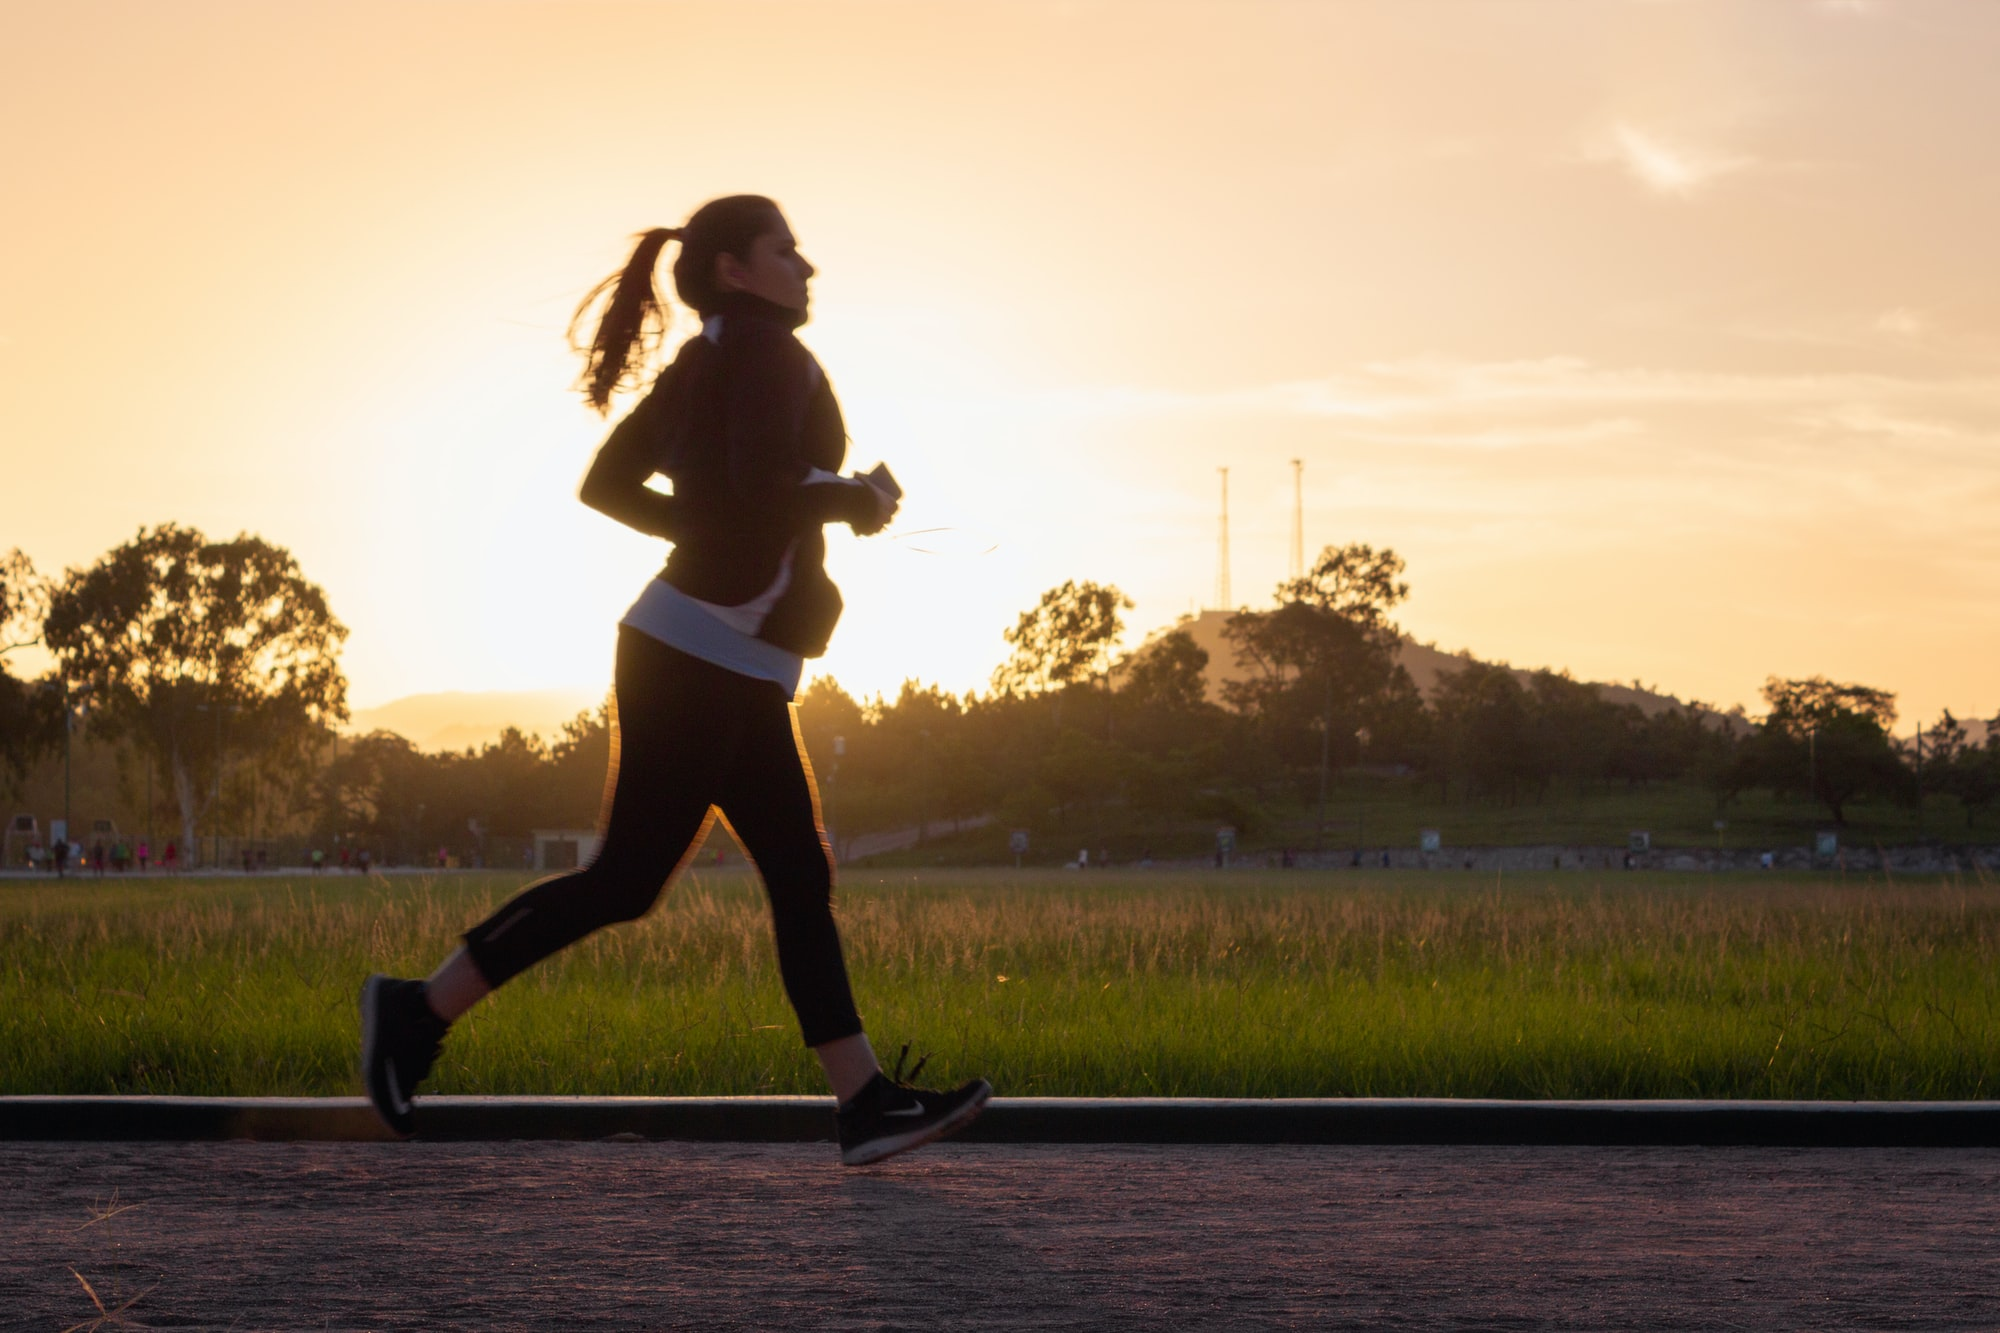 Woman running on track at sunset.